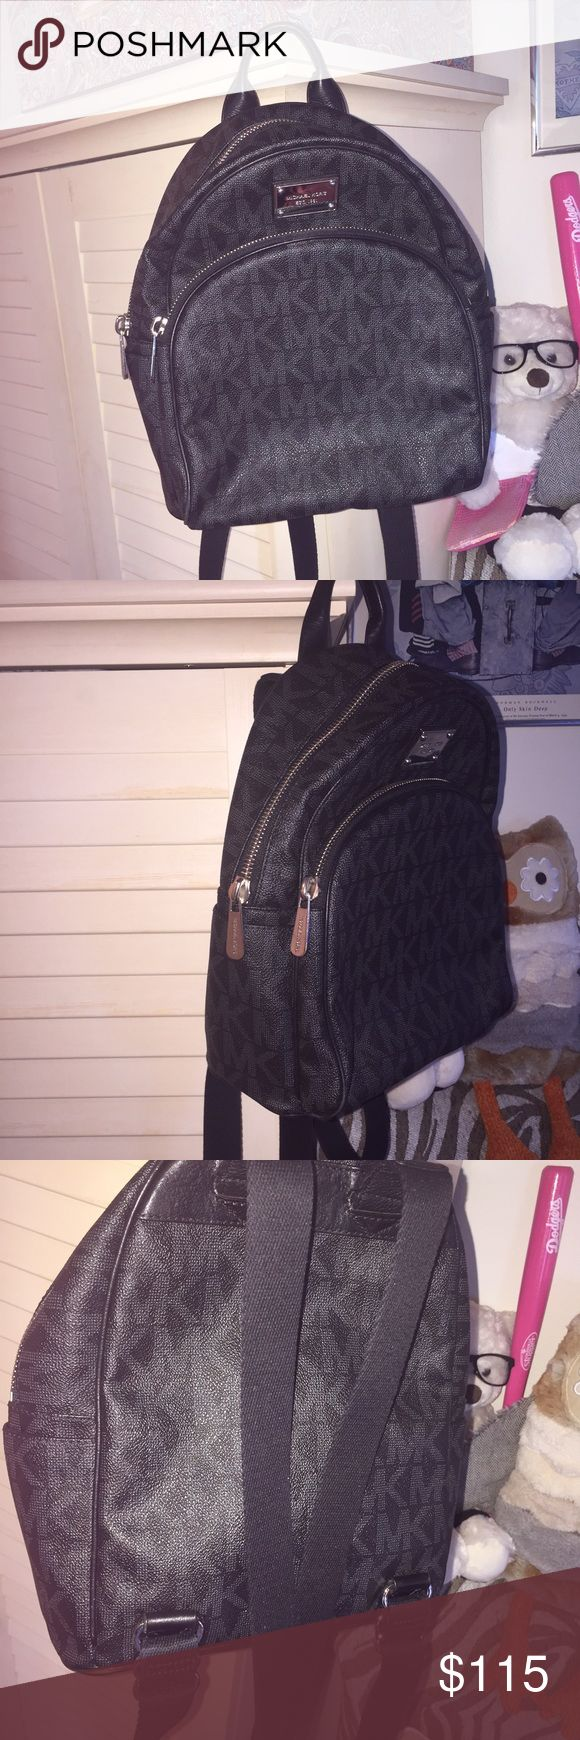 Michael Kors Black Signature Backpack Small FIRM small size. not the mini. ample room for things but not as big as a school backpack. has been used rate 8.5/10. clean, barely any wear to bag other than the hardware having slight scratches and the straps having slight piling as they are fabric. super comfy on shoulder because strap is fabric. no offers please, selling low. authentic. no dustbag sorry Michael Kors Bags Backpacks